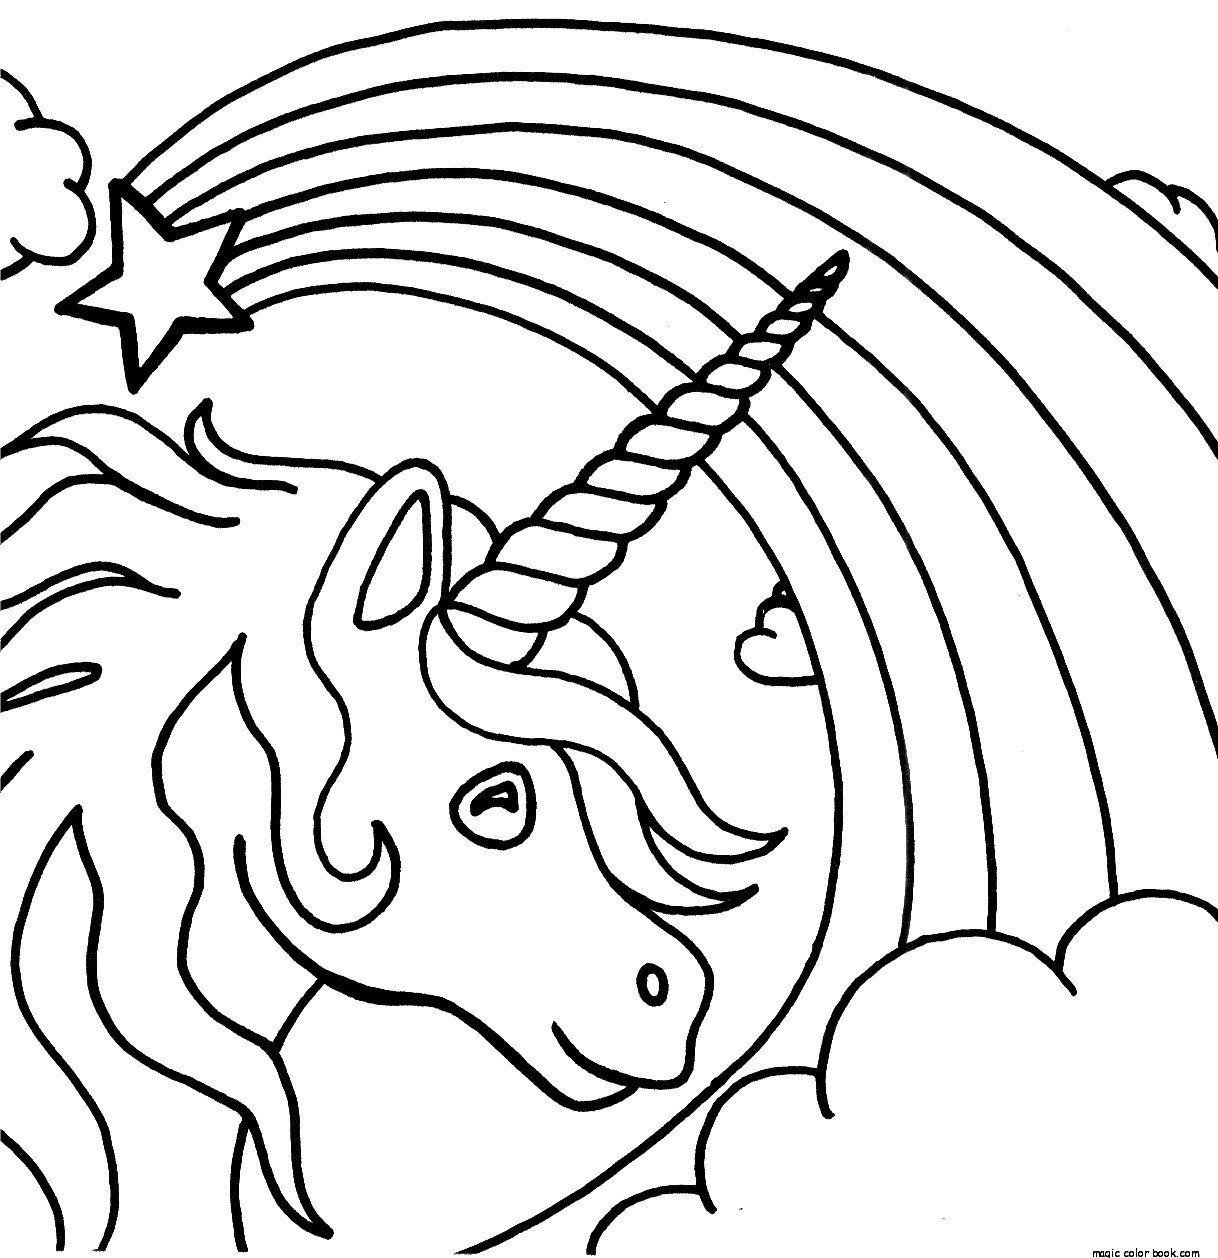 Unicorn Free Printable Coloring Pages